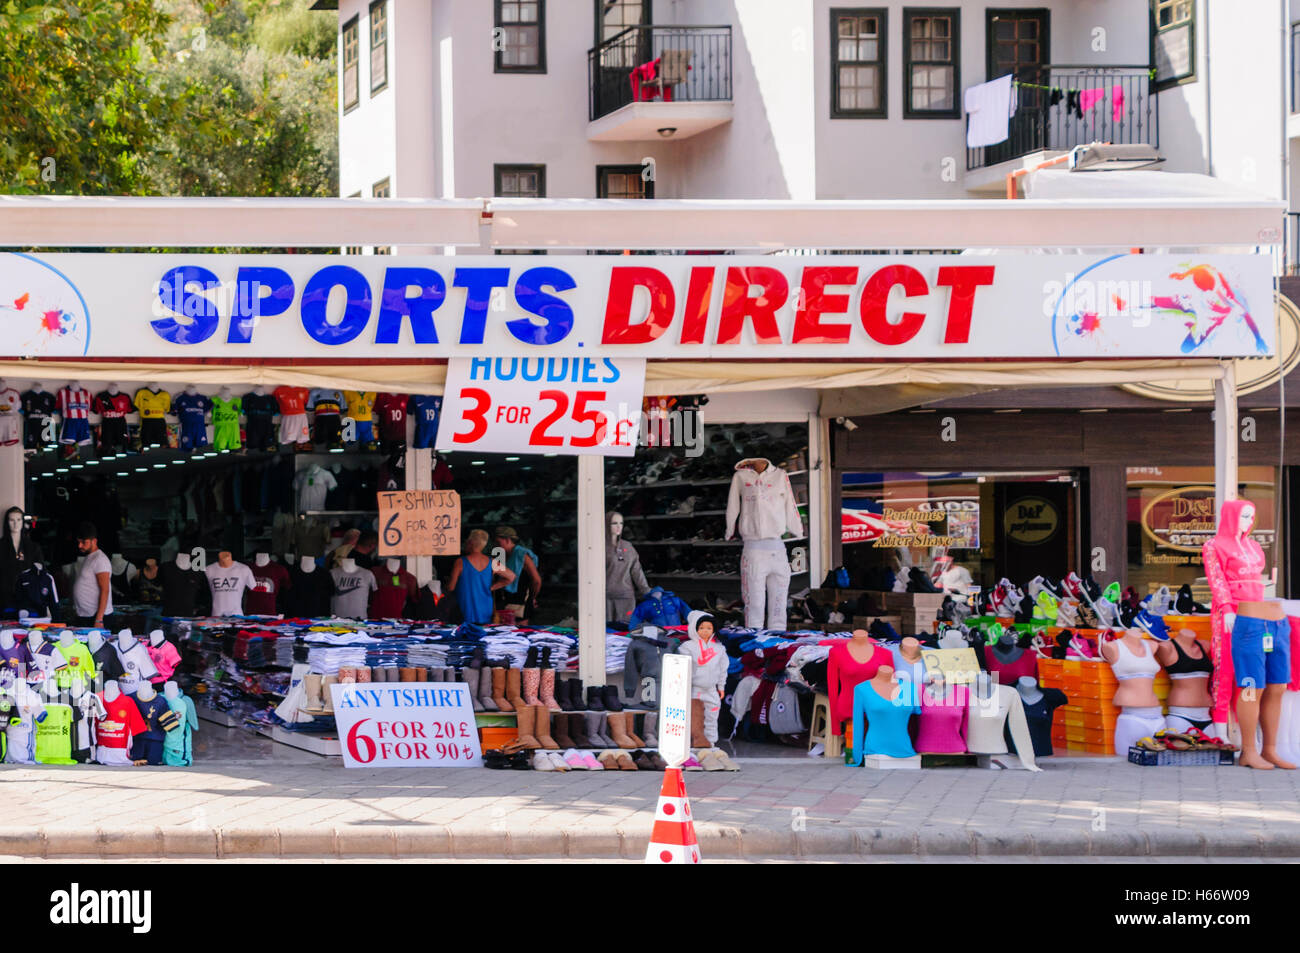 shop in turkey called sports direct selling counterfeit clothing stock photo 124311833 alamy. Black Bedroom Furniture Sets. Home Design Ideas